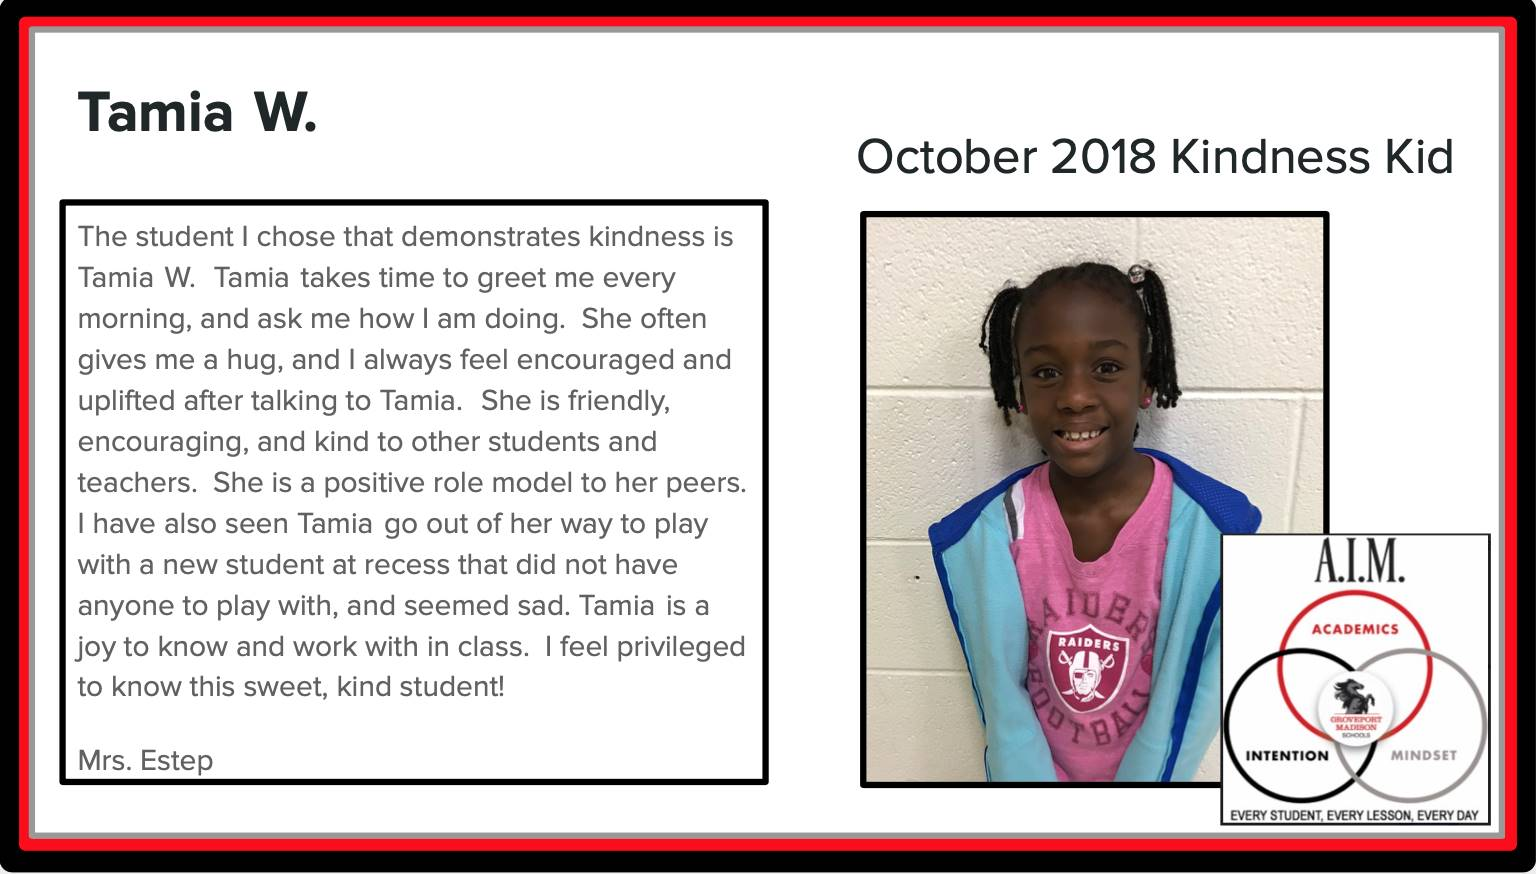 Kindness Kid Tamia